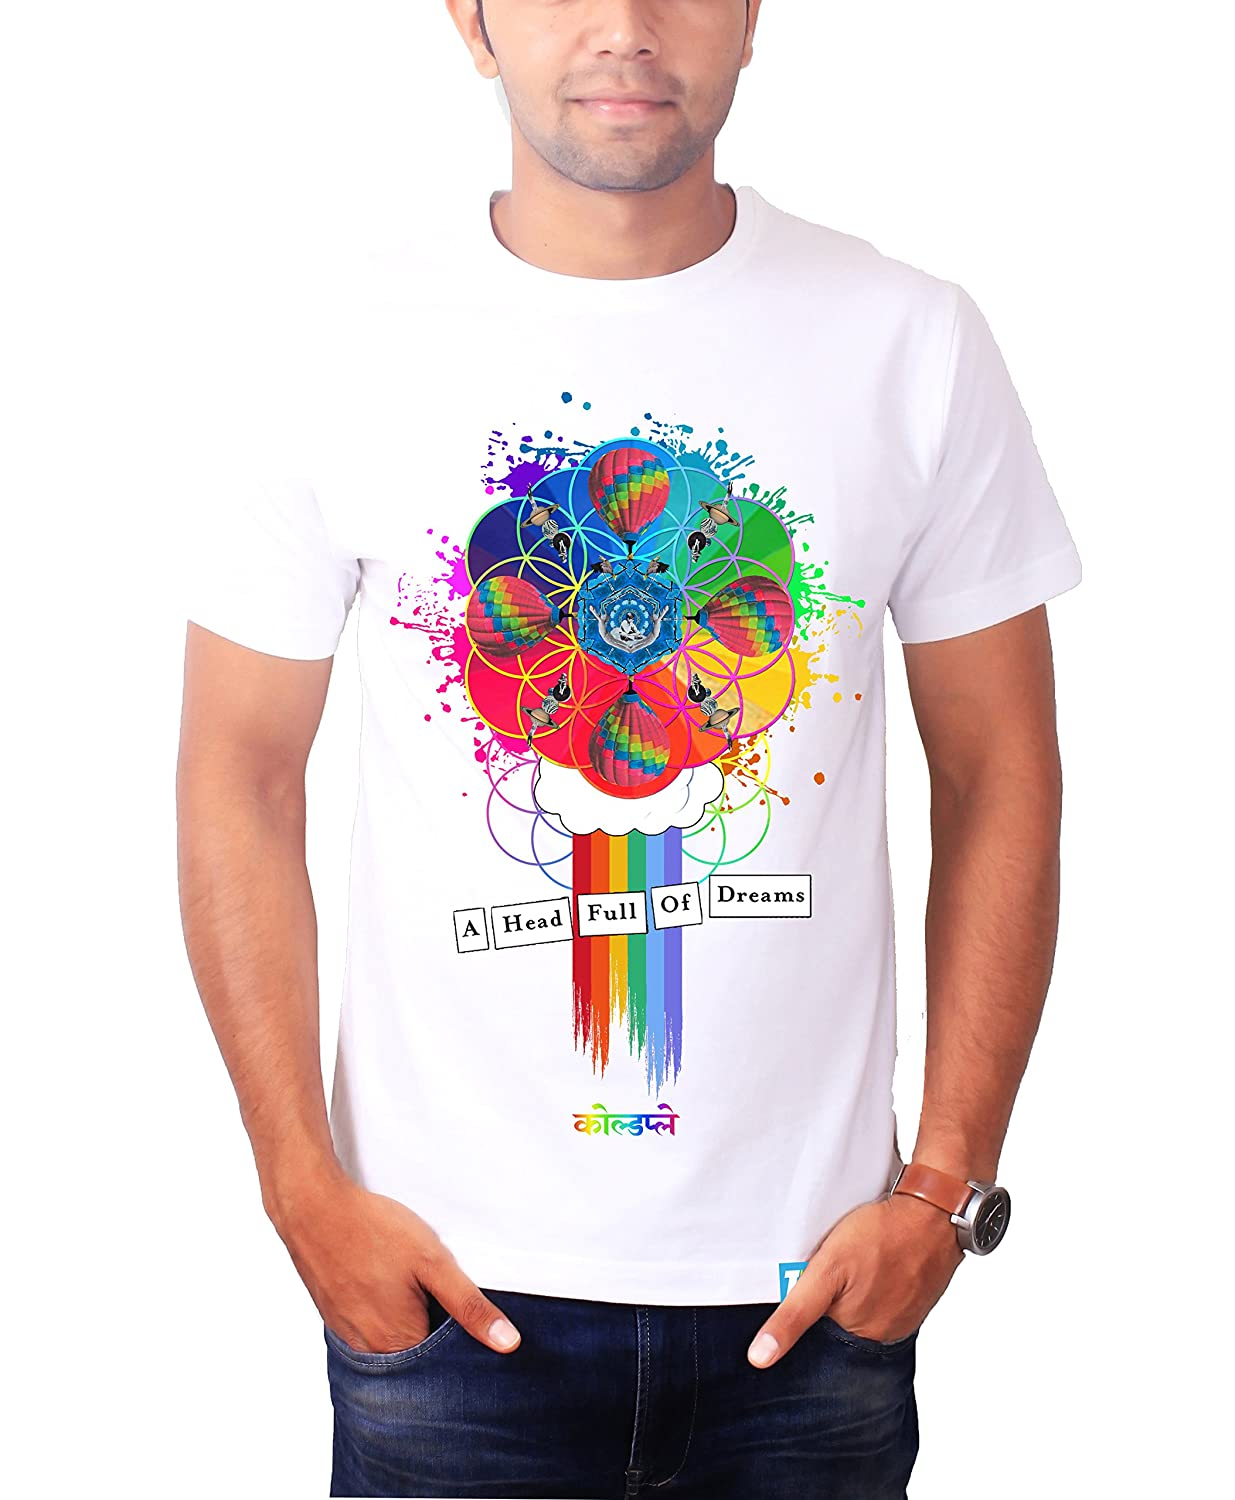 a20c807d4 The Banyan Tee Head Full of Dreams Coldplay Shirt – Coldplay Merchandise by  TBT: Amazon.in: Clothing & Accessories